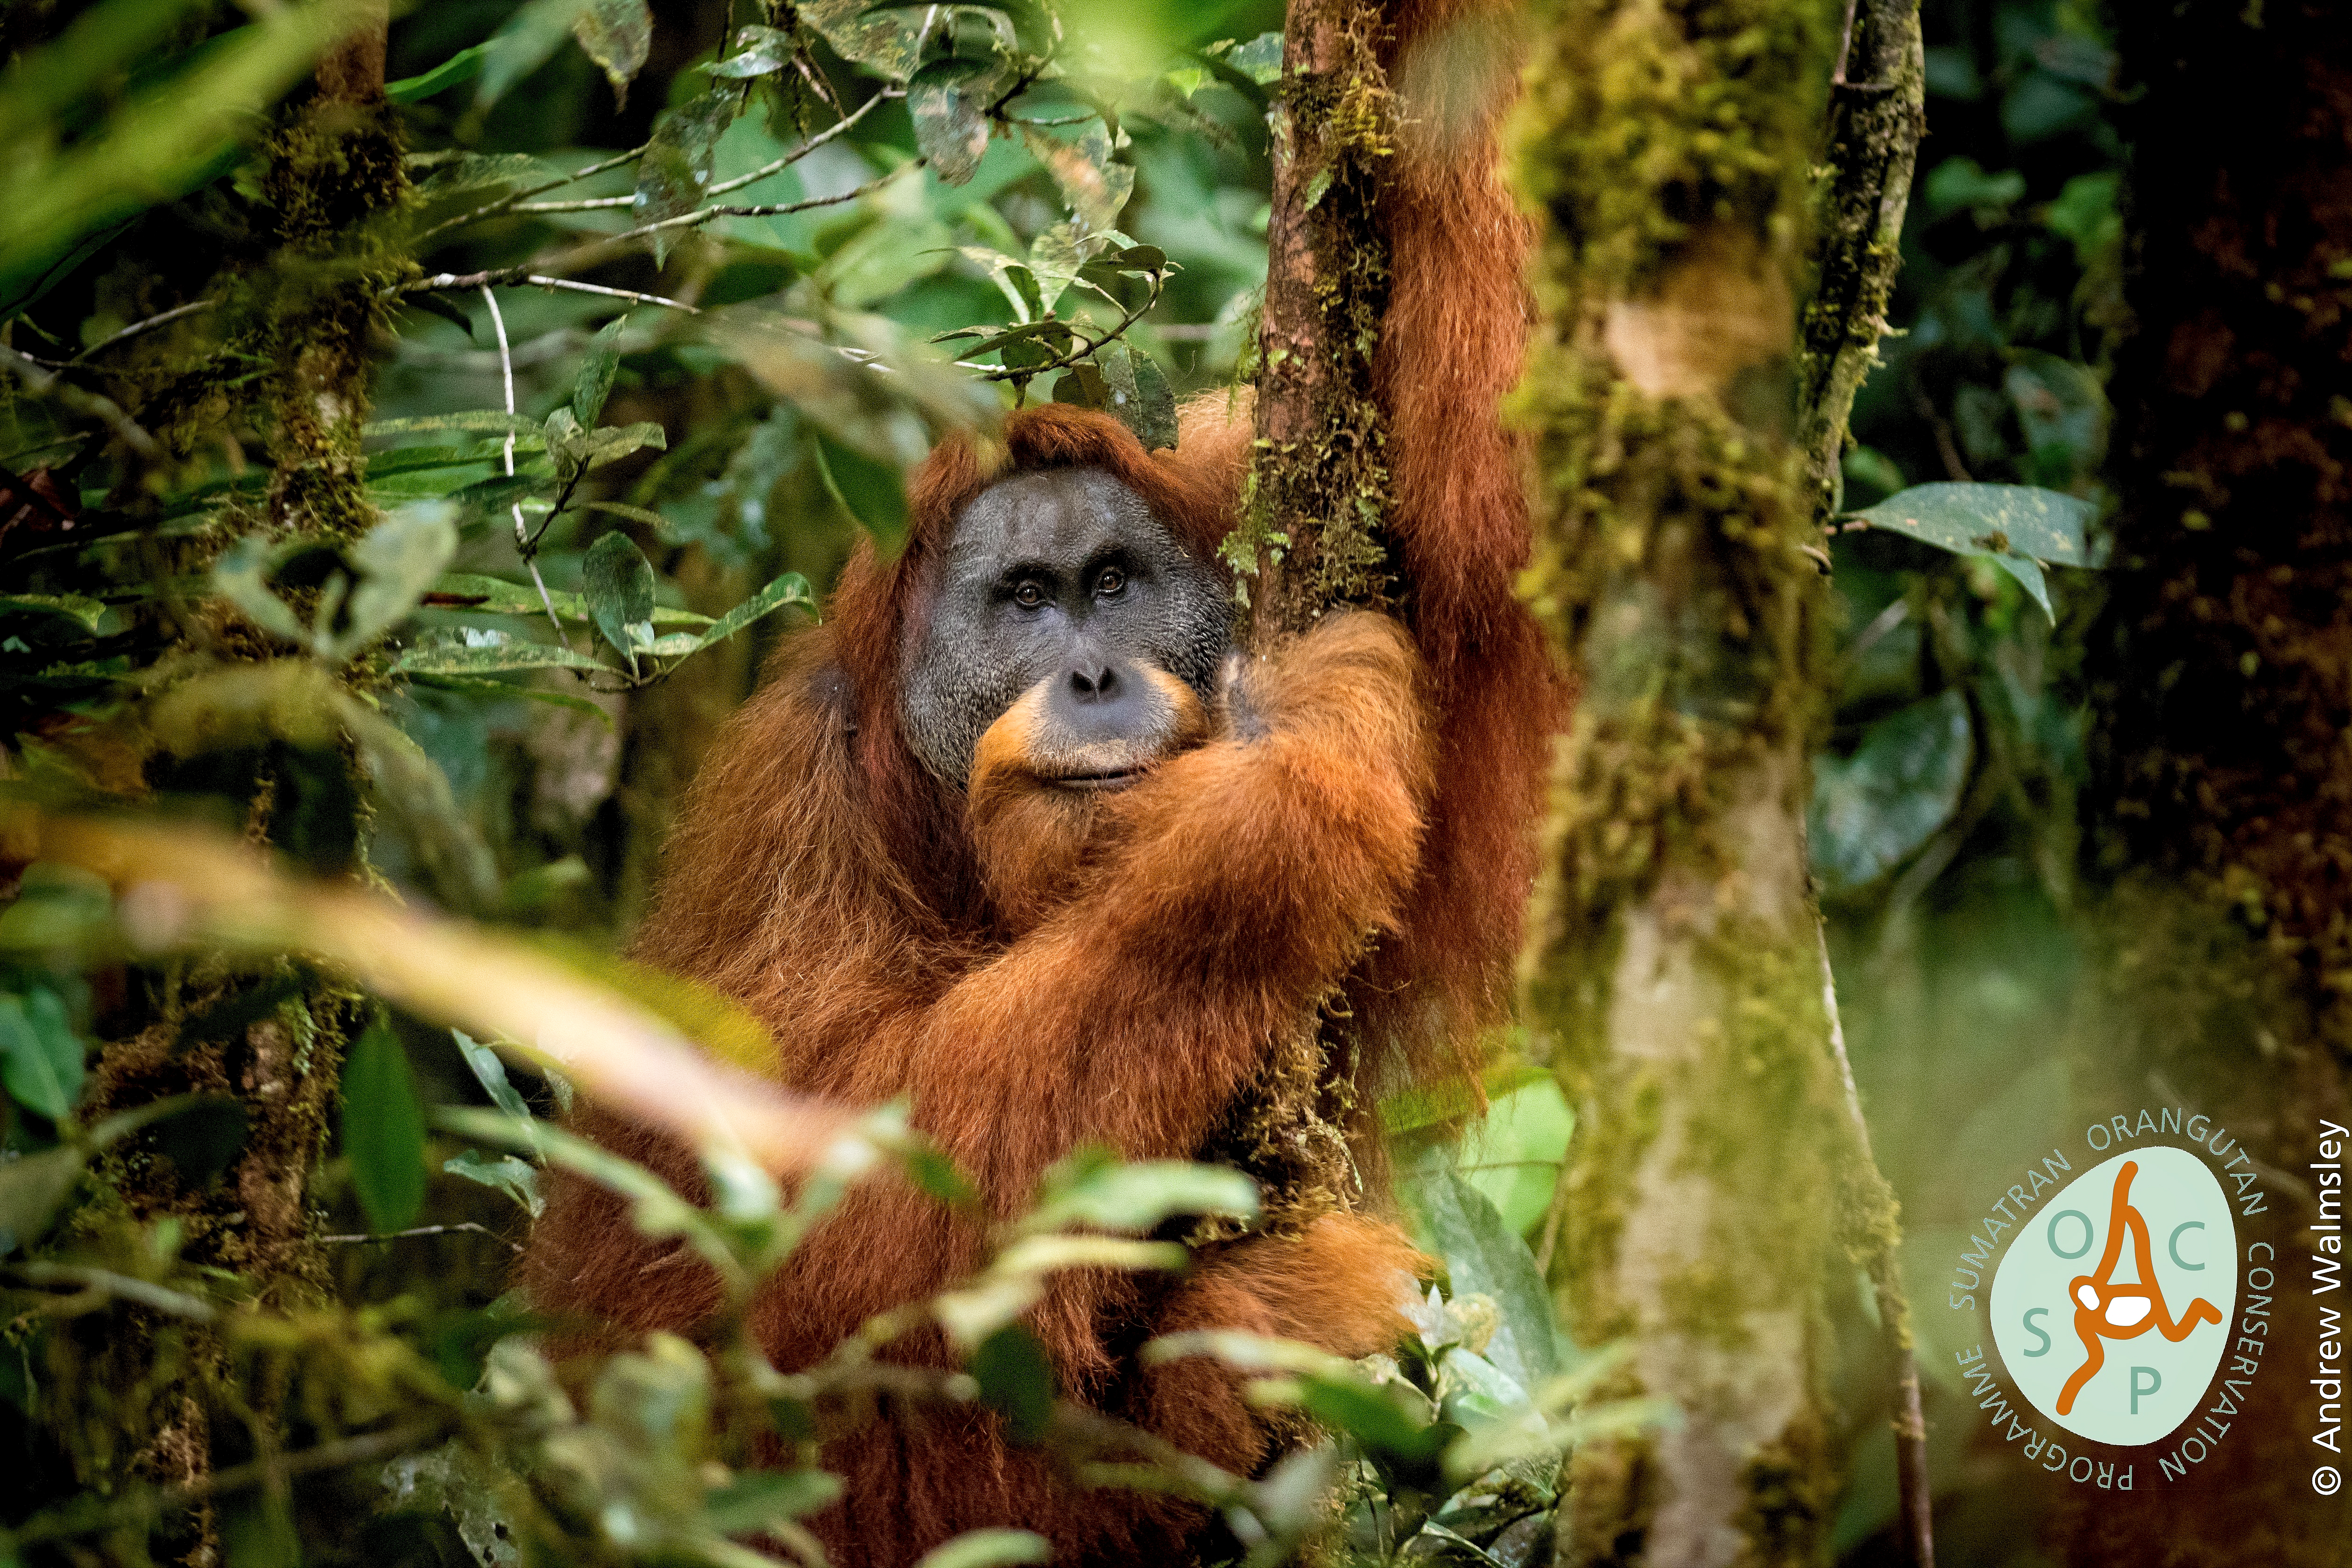 Pongo tapanuliensis is the most imperiled great ape in the world. Only an estimated 800 individuals exist in fragmented habitat in Sumatra.